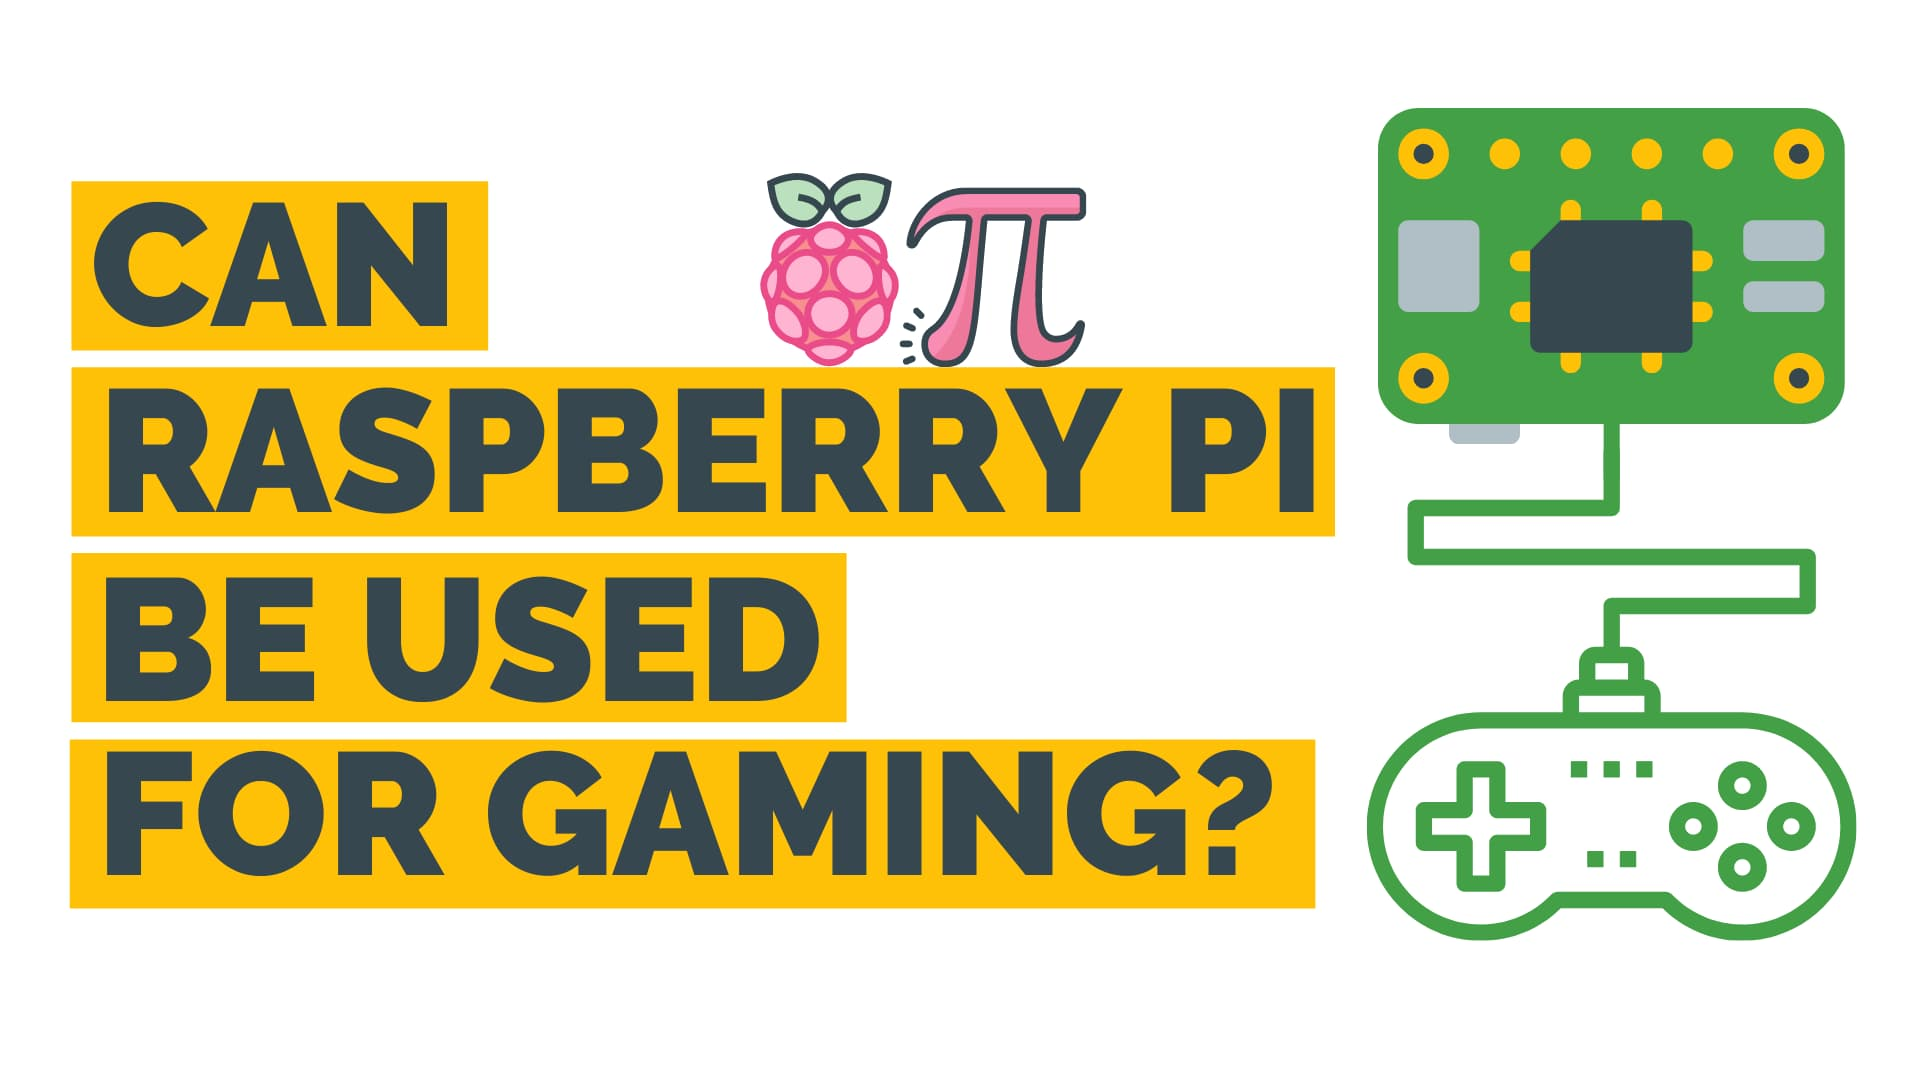 can raspberry pi be used for gaming